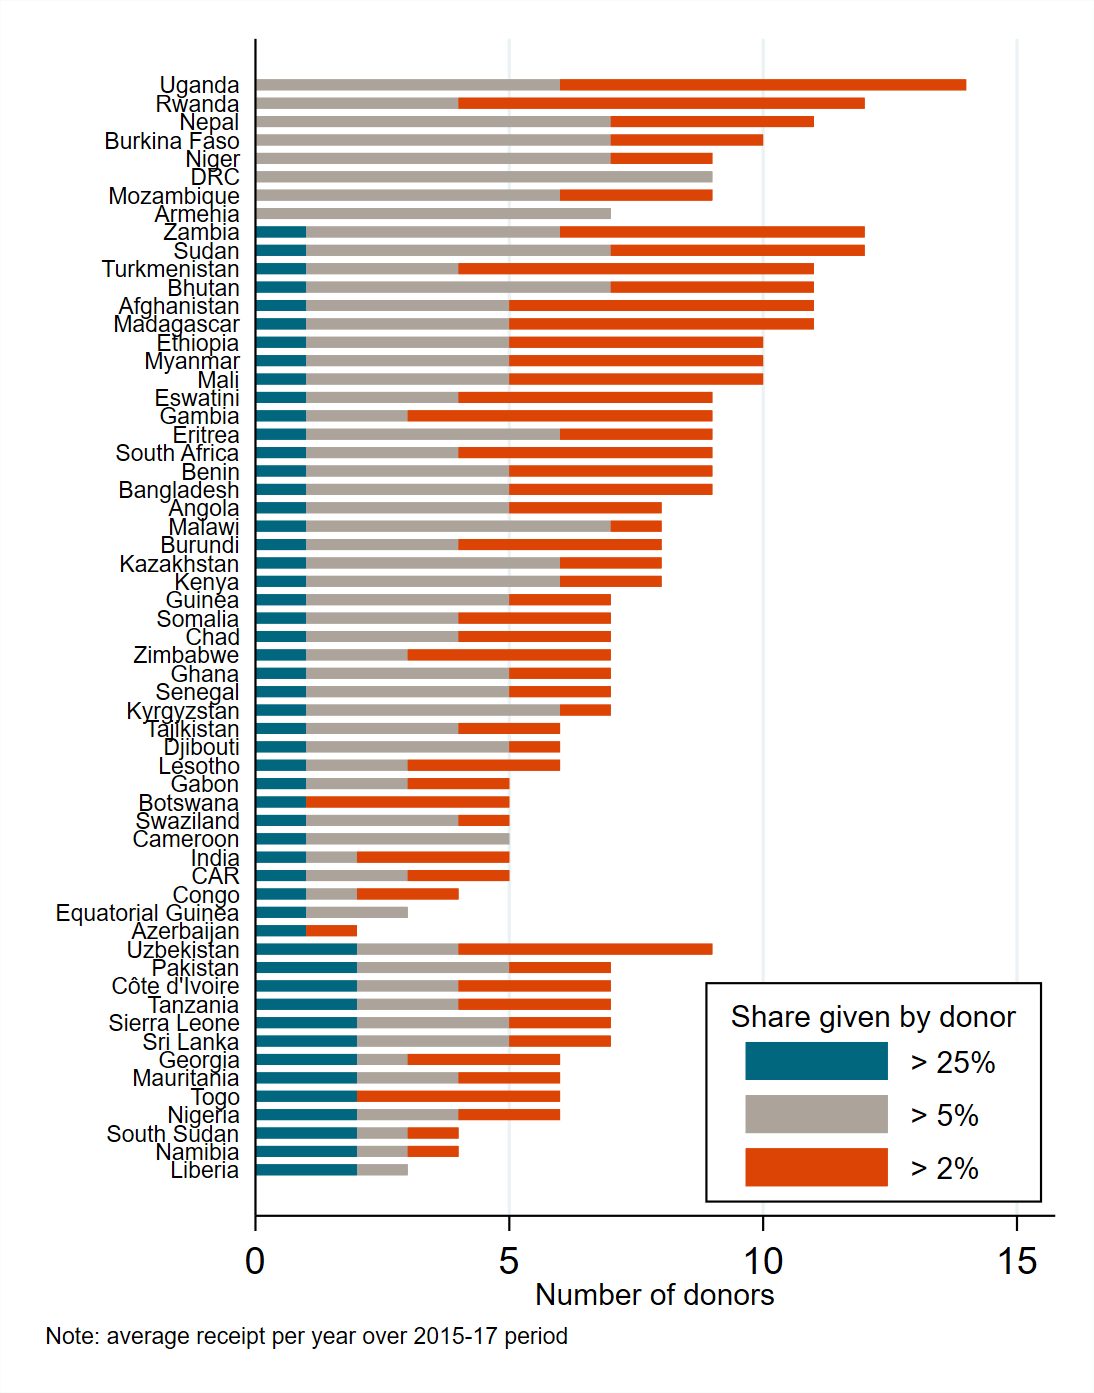 Competition between donors varies considerably from country to country.